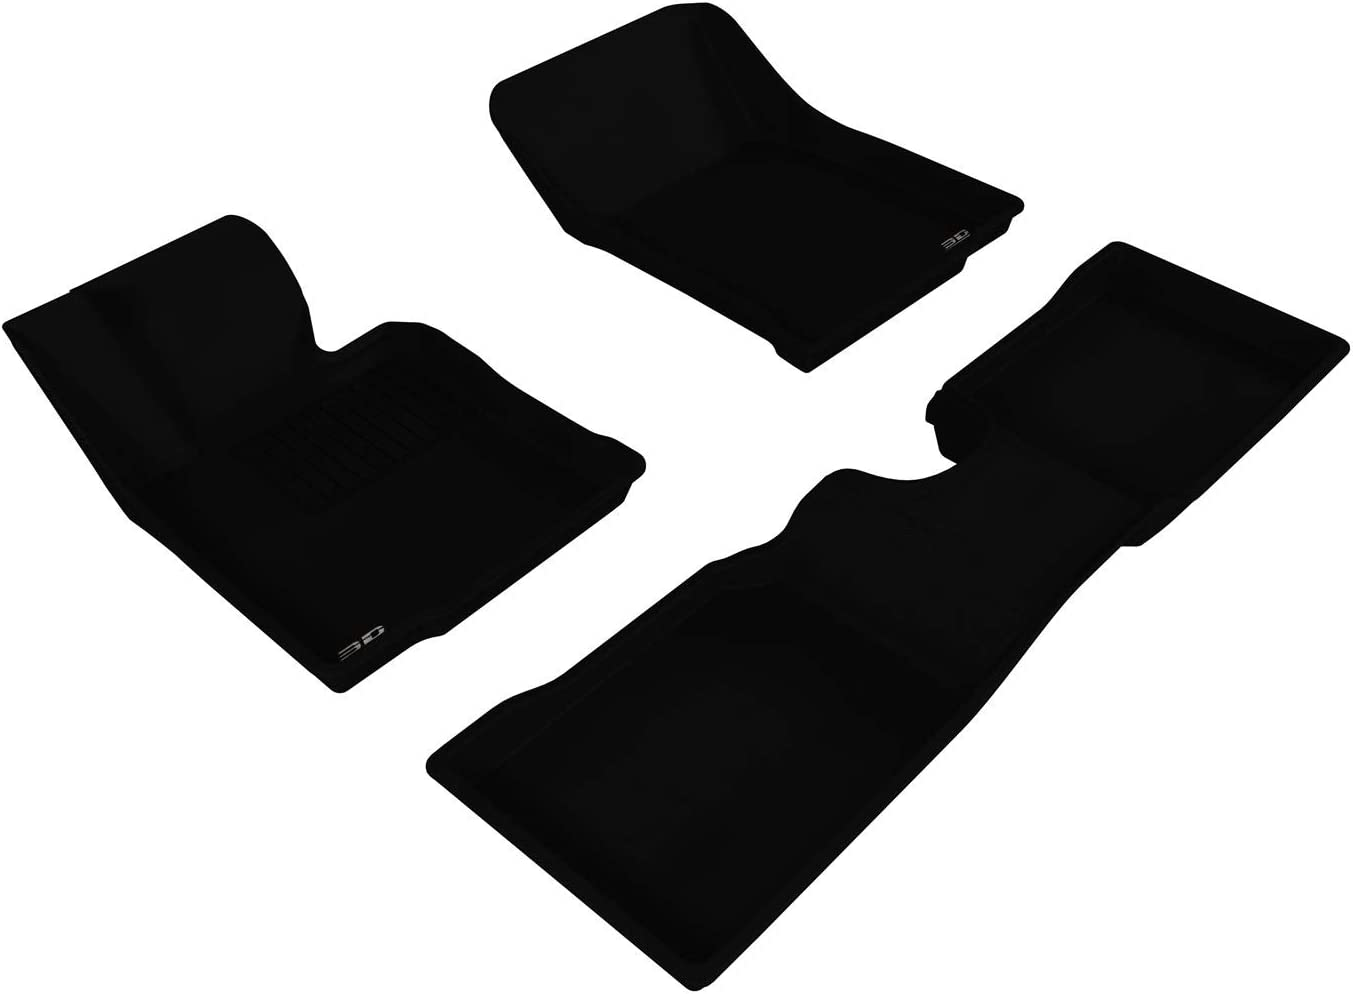 Kagu Rubber 3D MAXpider Complete Set Custom Fit All-Weather Floor Mat for Select Chevrolet Silverado Models Black